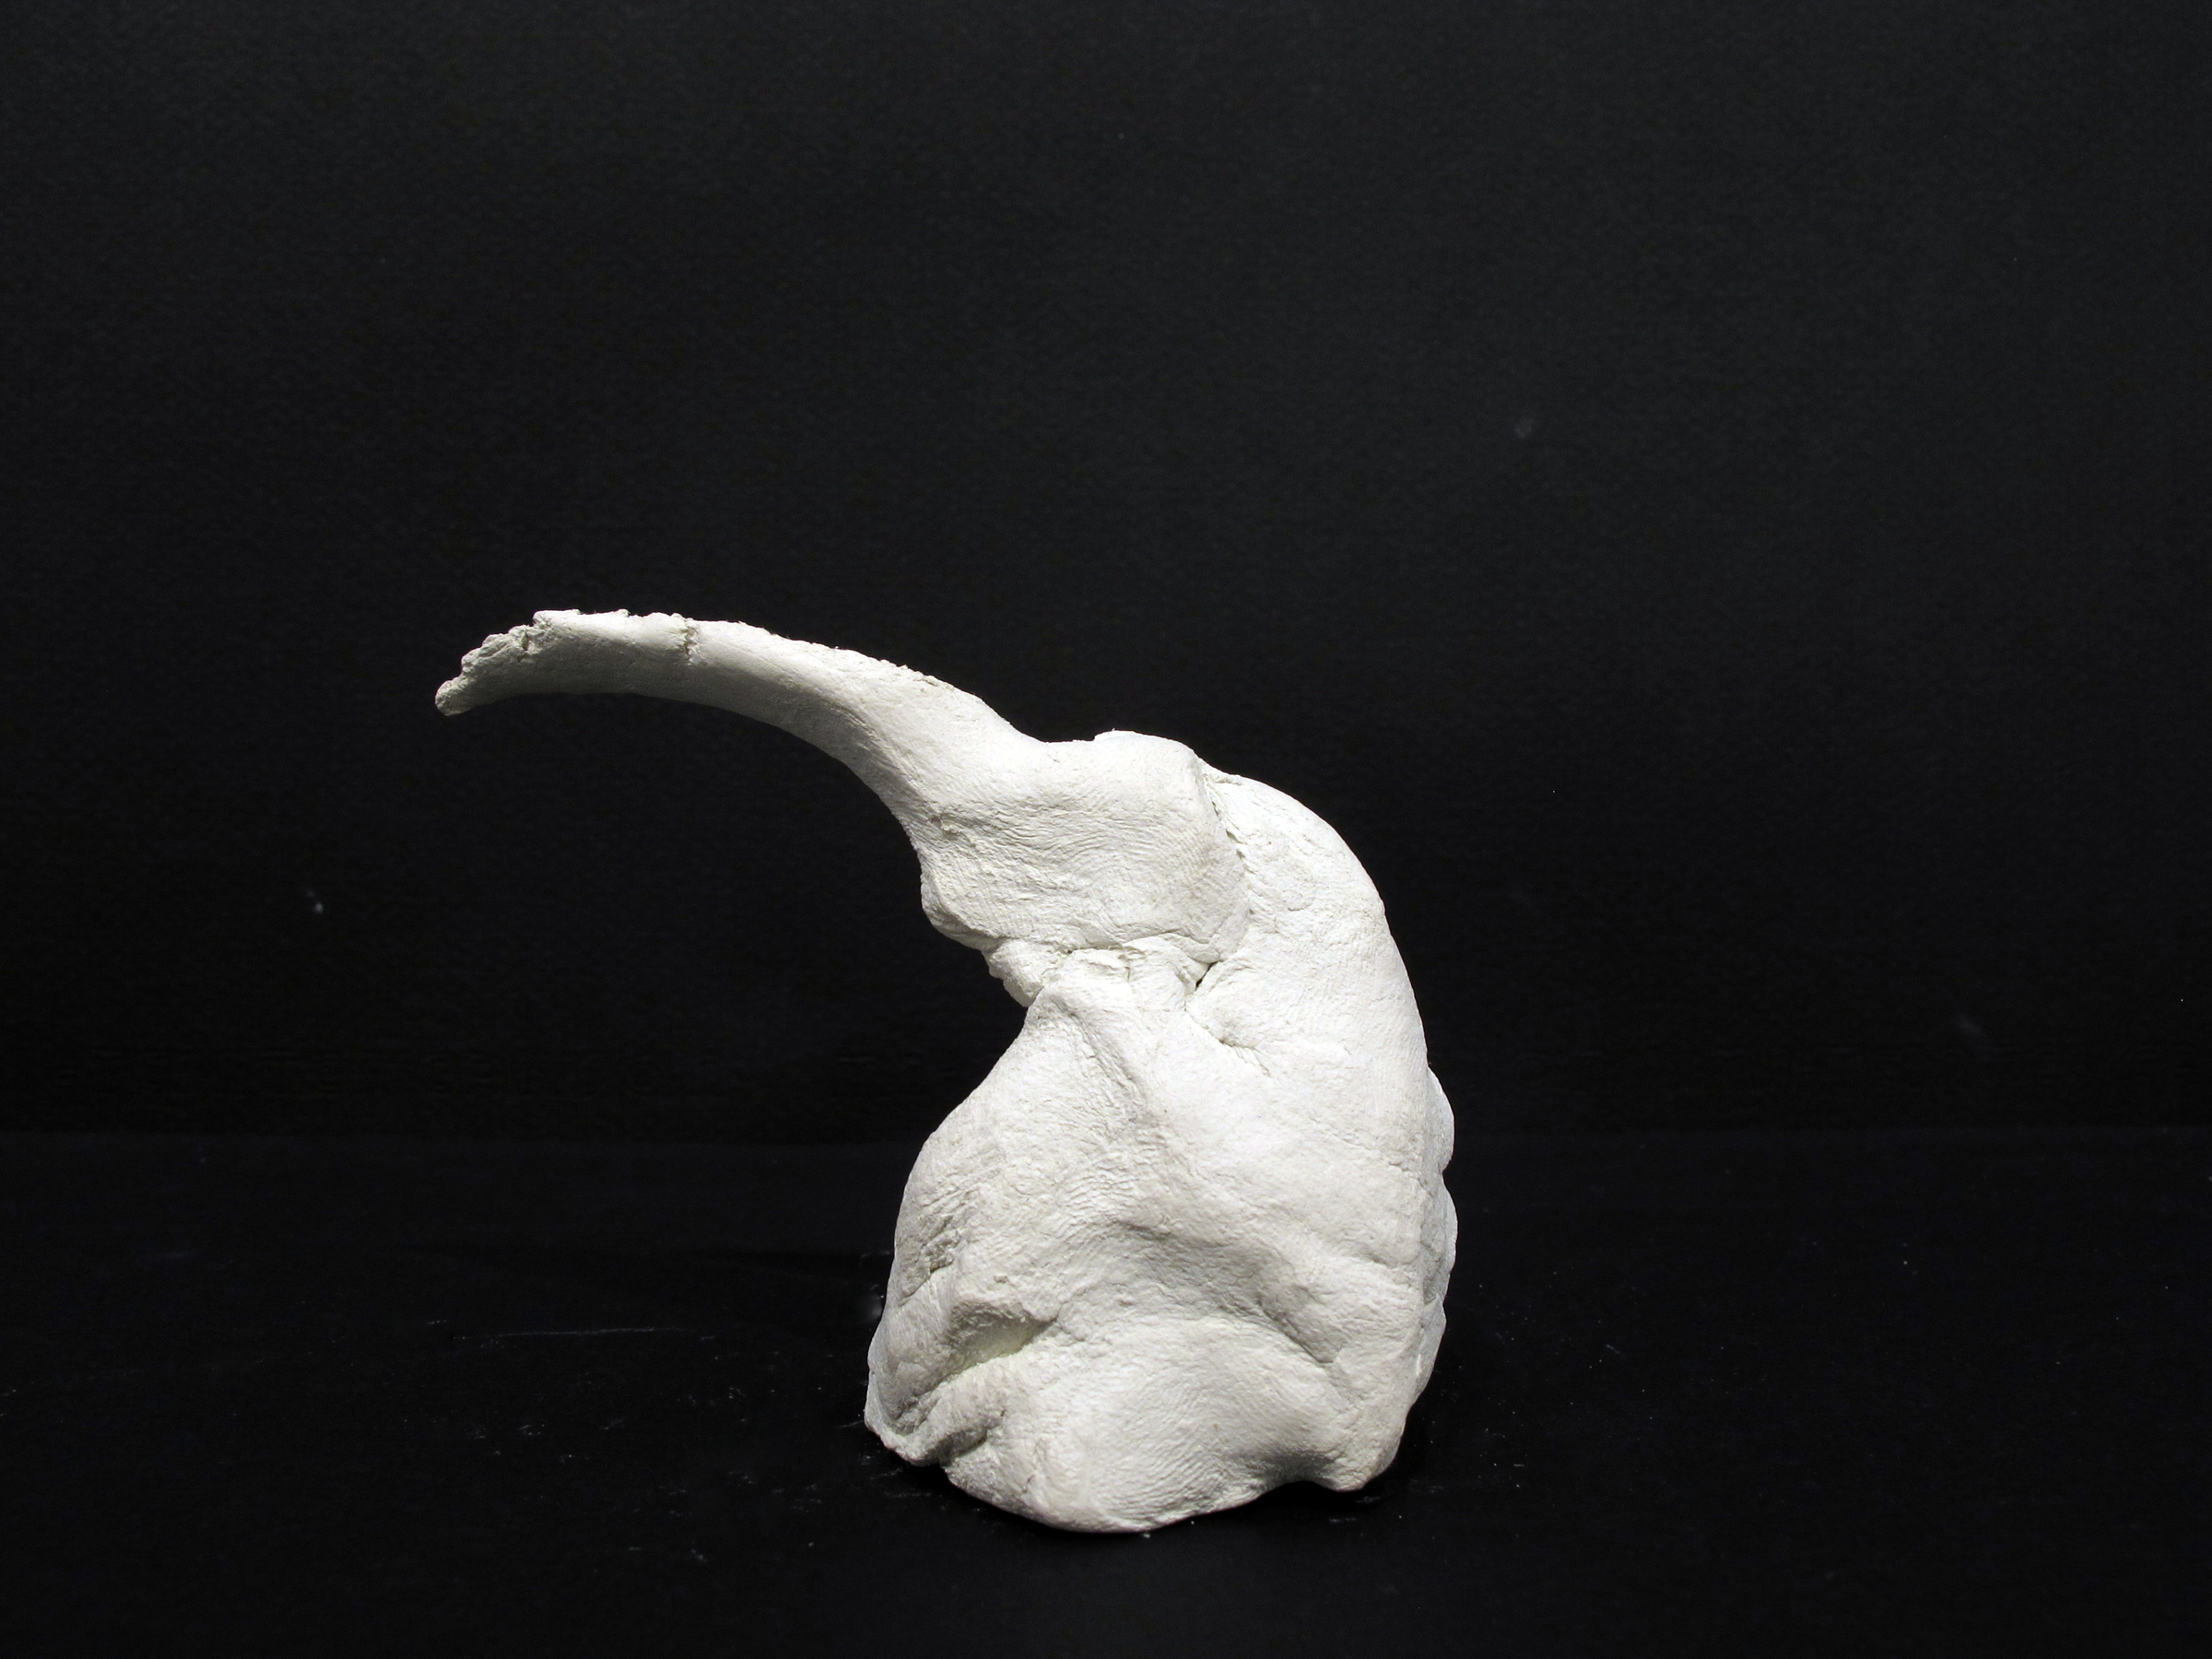 Dan Asher,  Untitled,  1993, clay, 2.5 x 2.25 x 2 in.